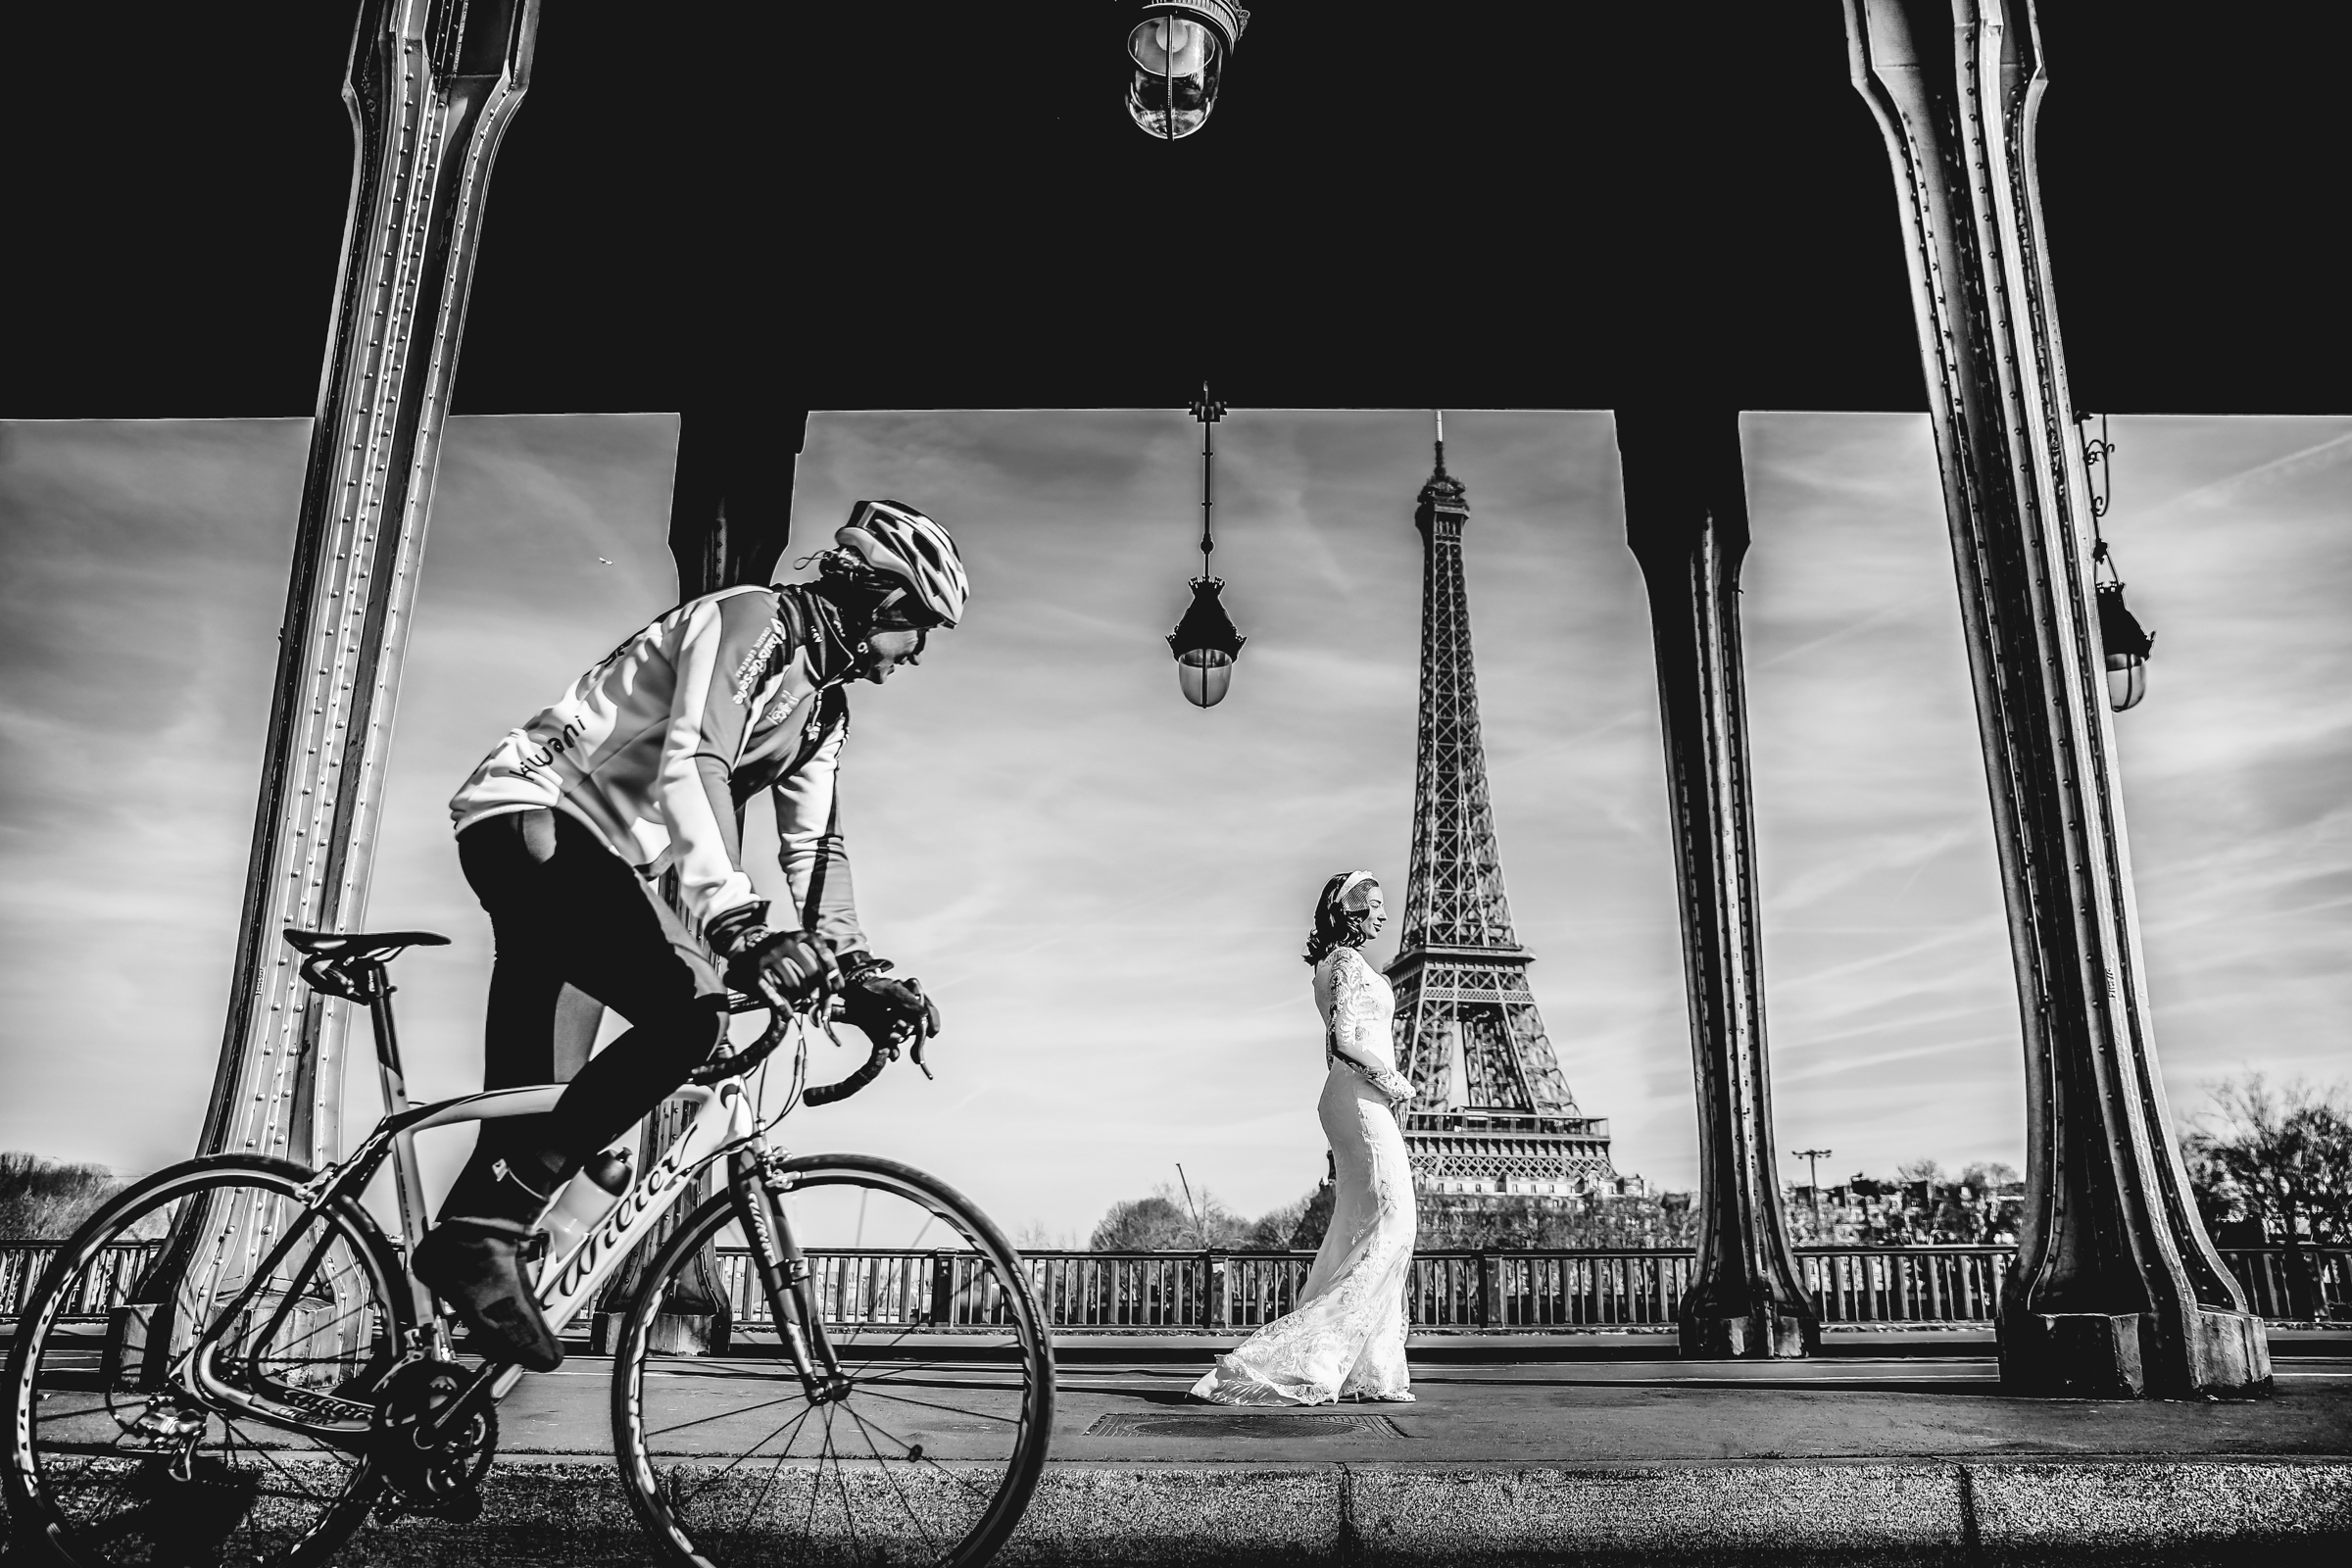 Man on bike passes bride near Eiffel Tower - photo by Julien Laurent-Georges